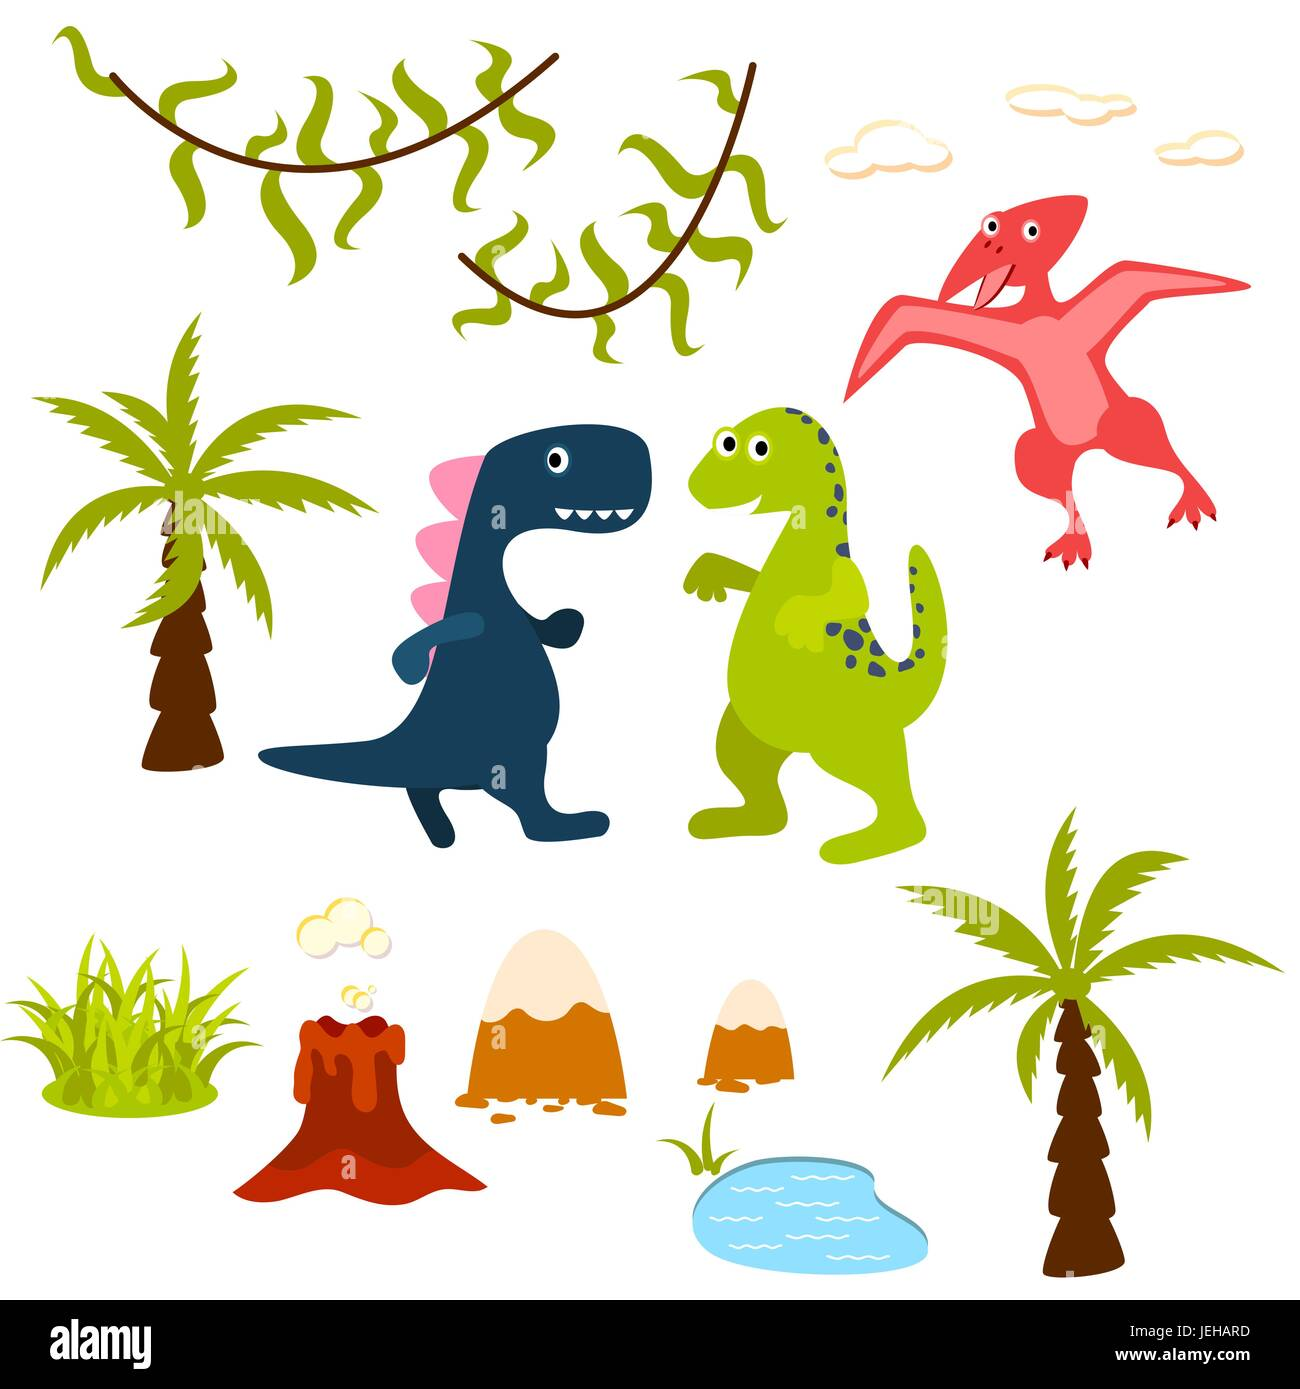 Dinosaur and jungle tree clipart set. - Stock Vector